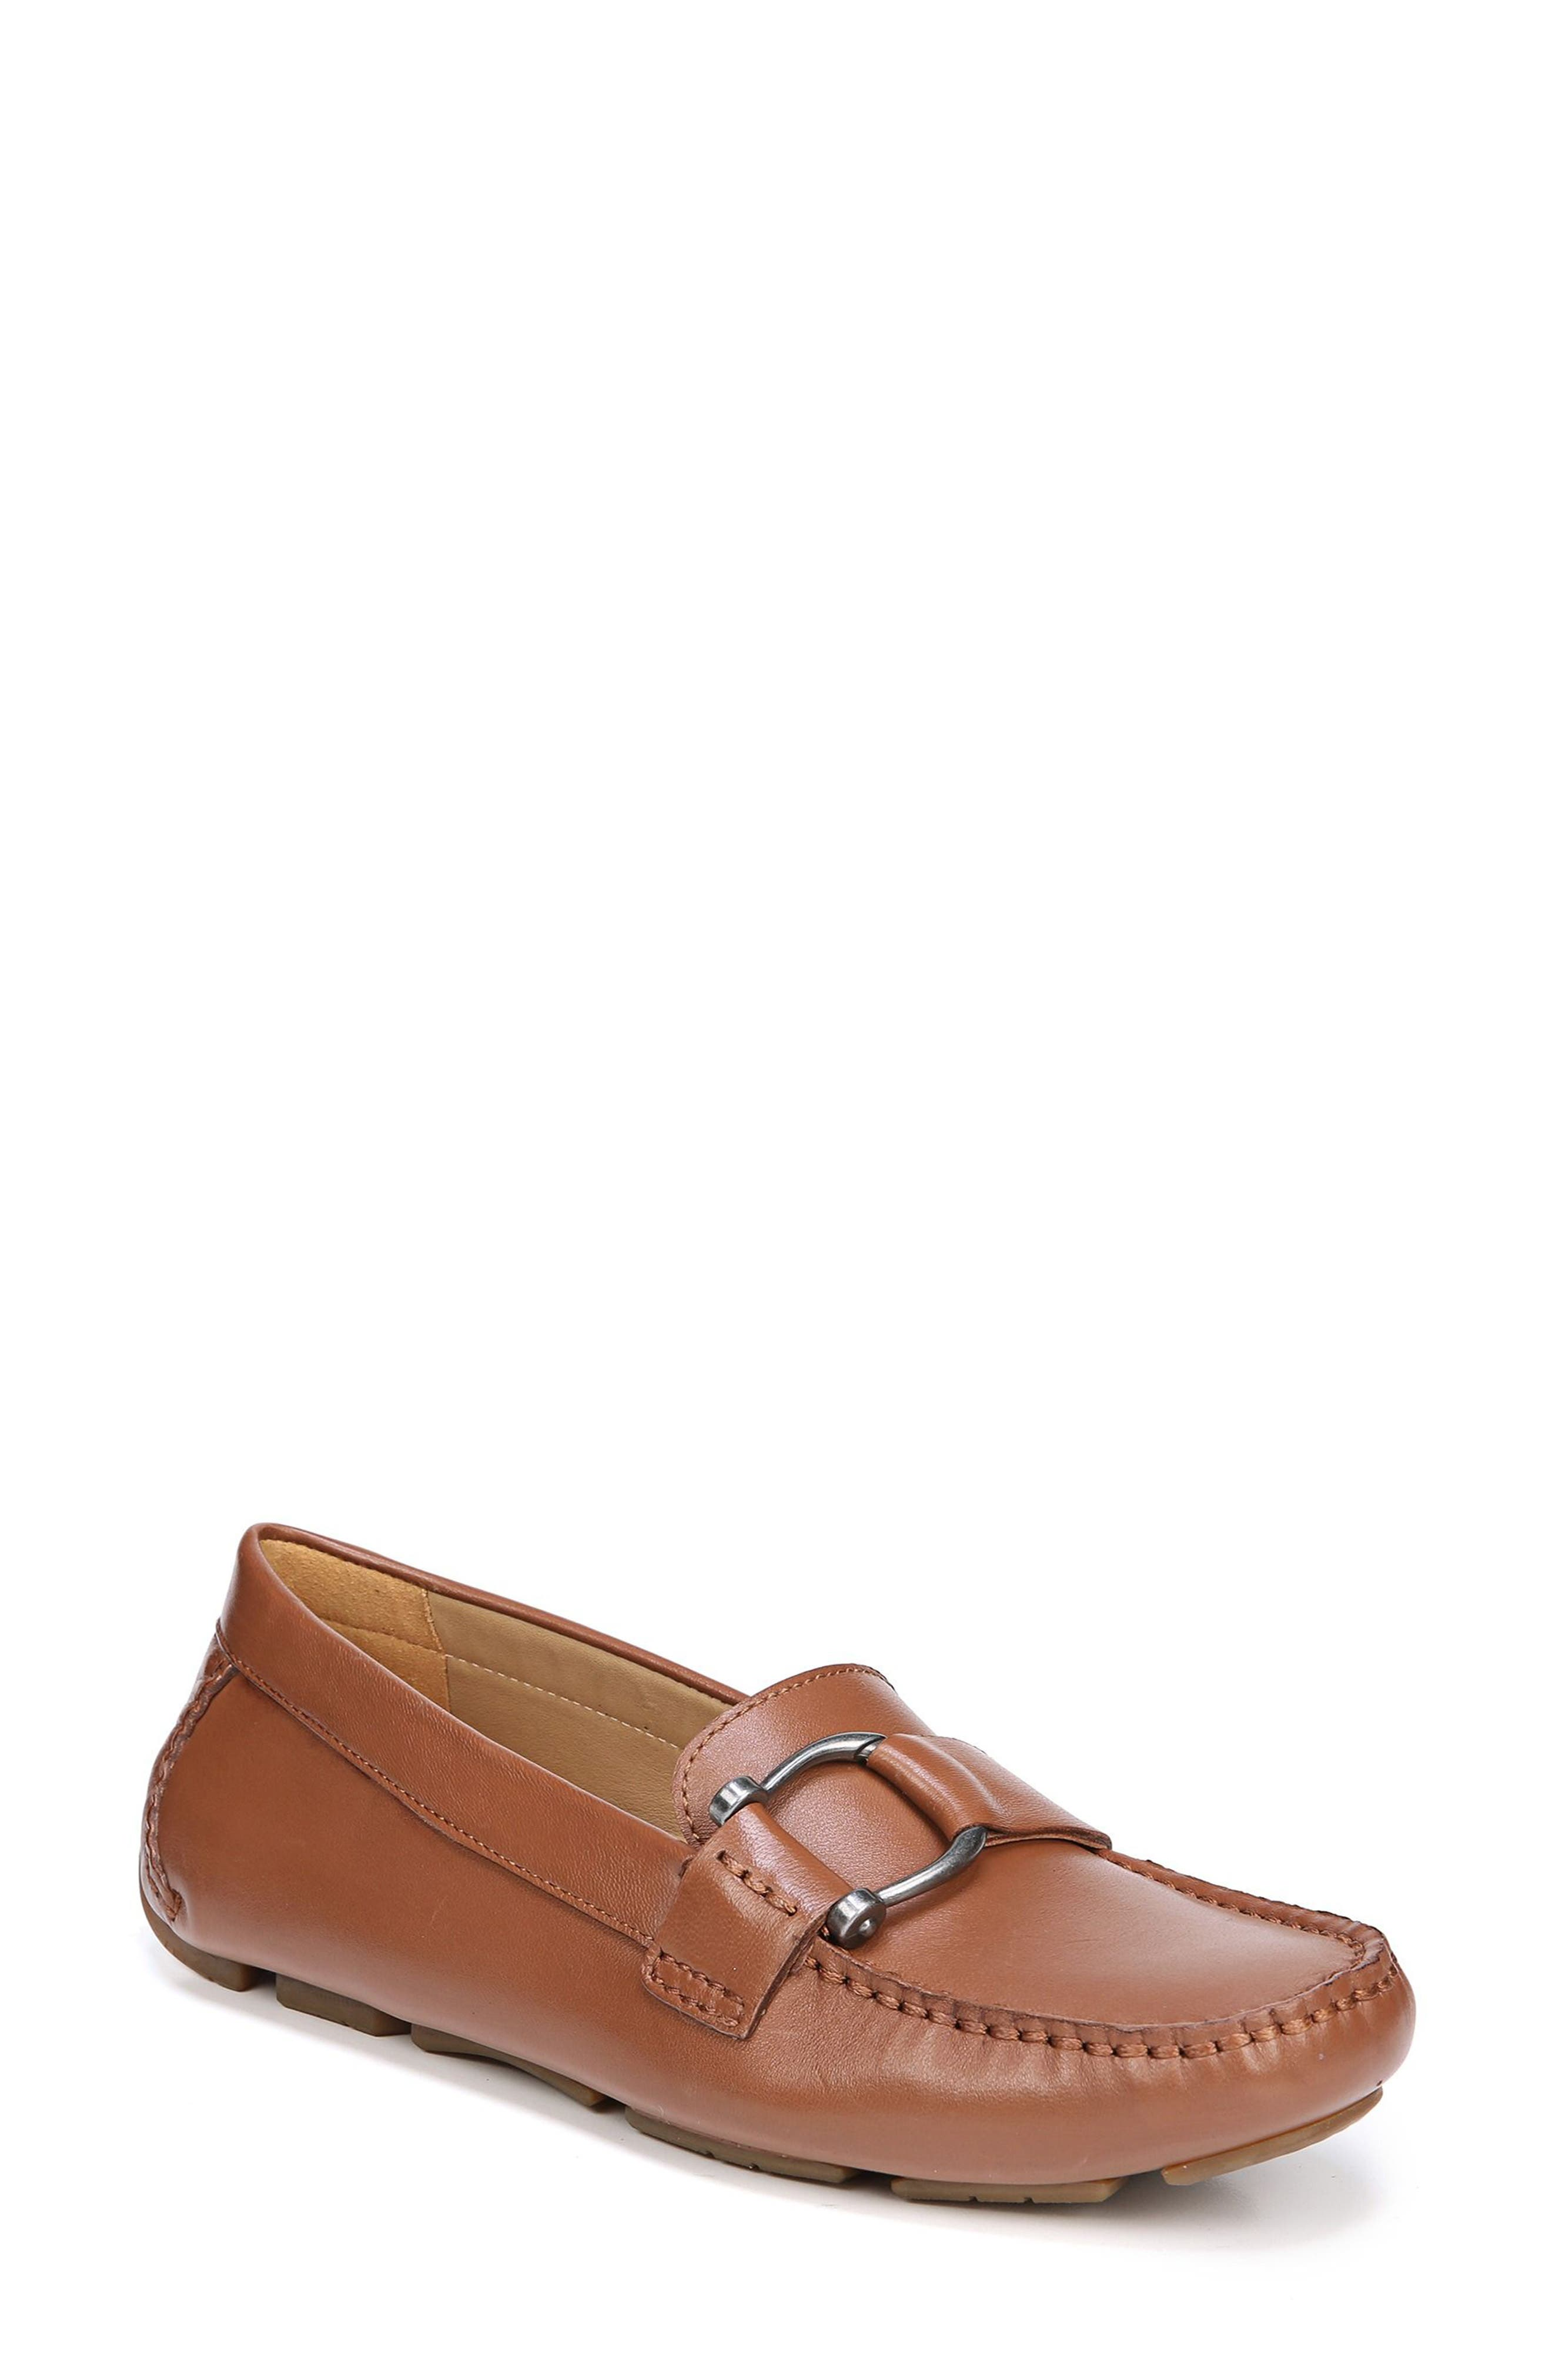 Nara Loafer,                         Main,                         color, COGNAC LEATHER